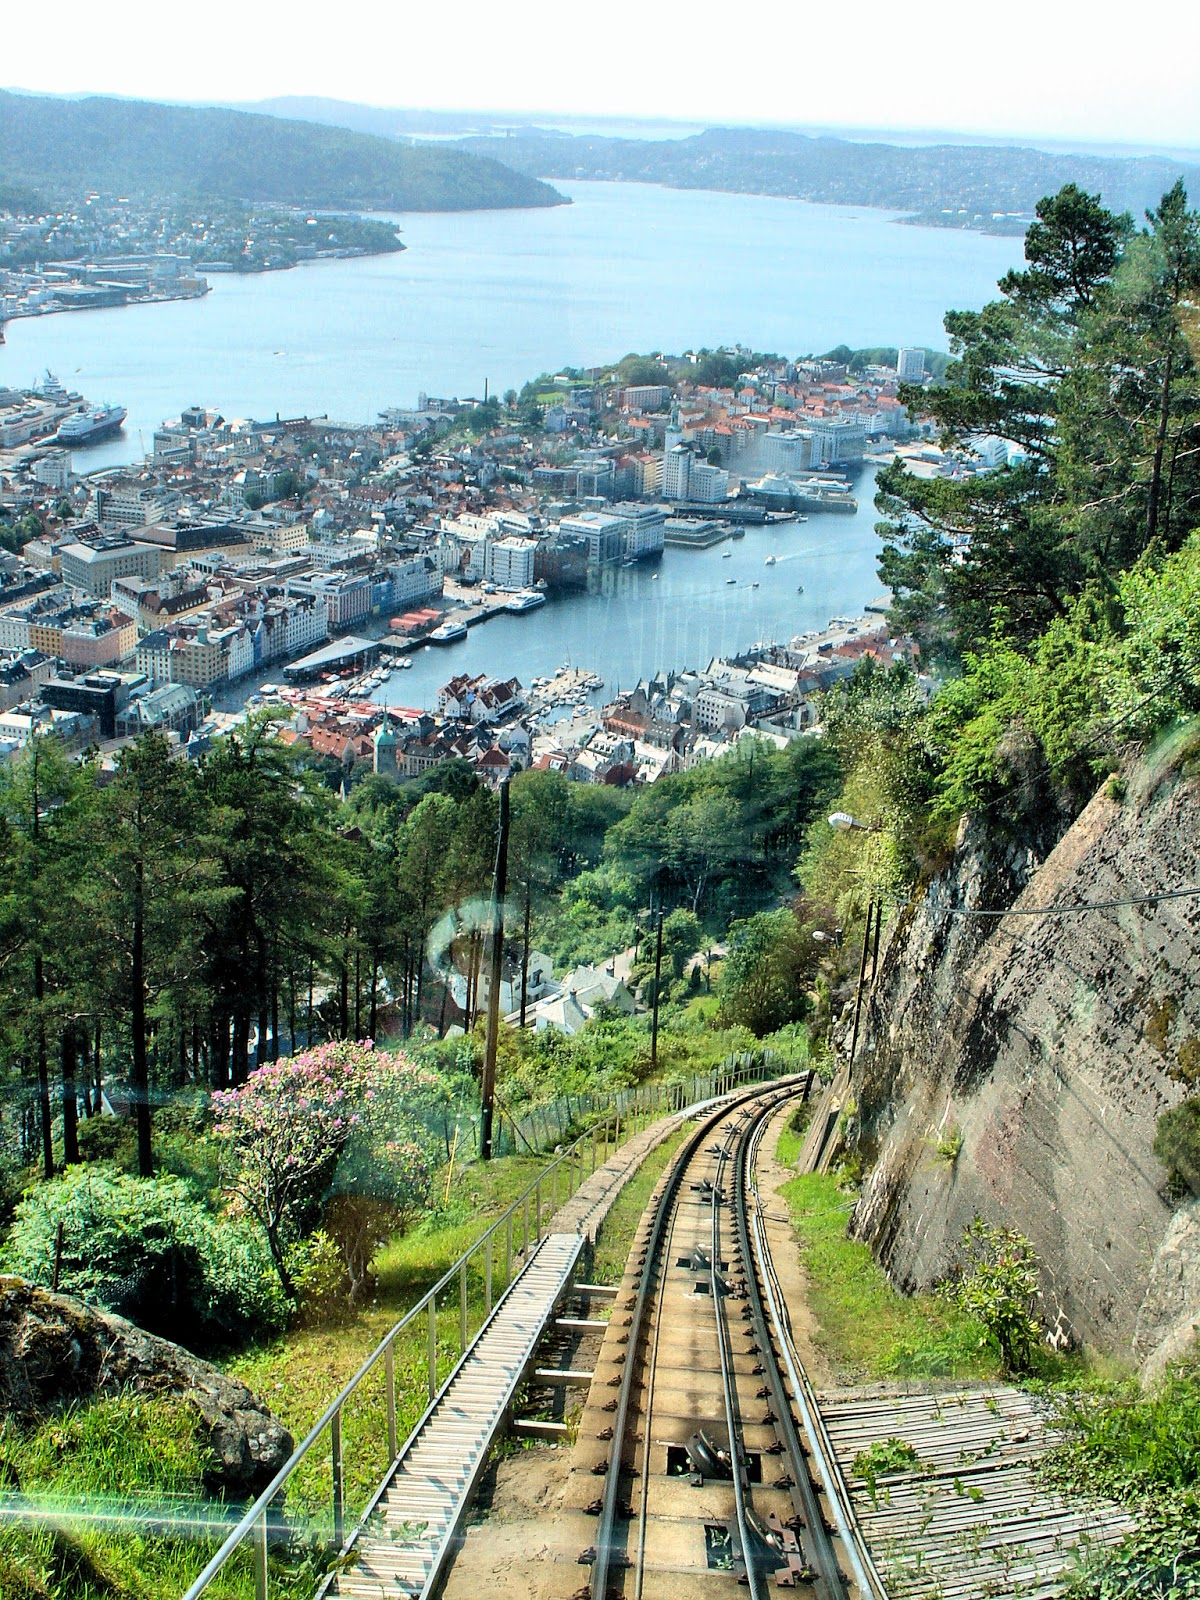 The view of Bergen as we climbed up Mount Fløyen aboard the Fløibanen funicular—a most spectacular ride!